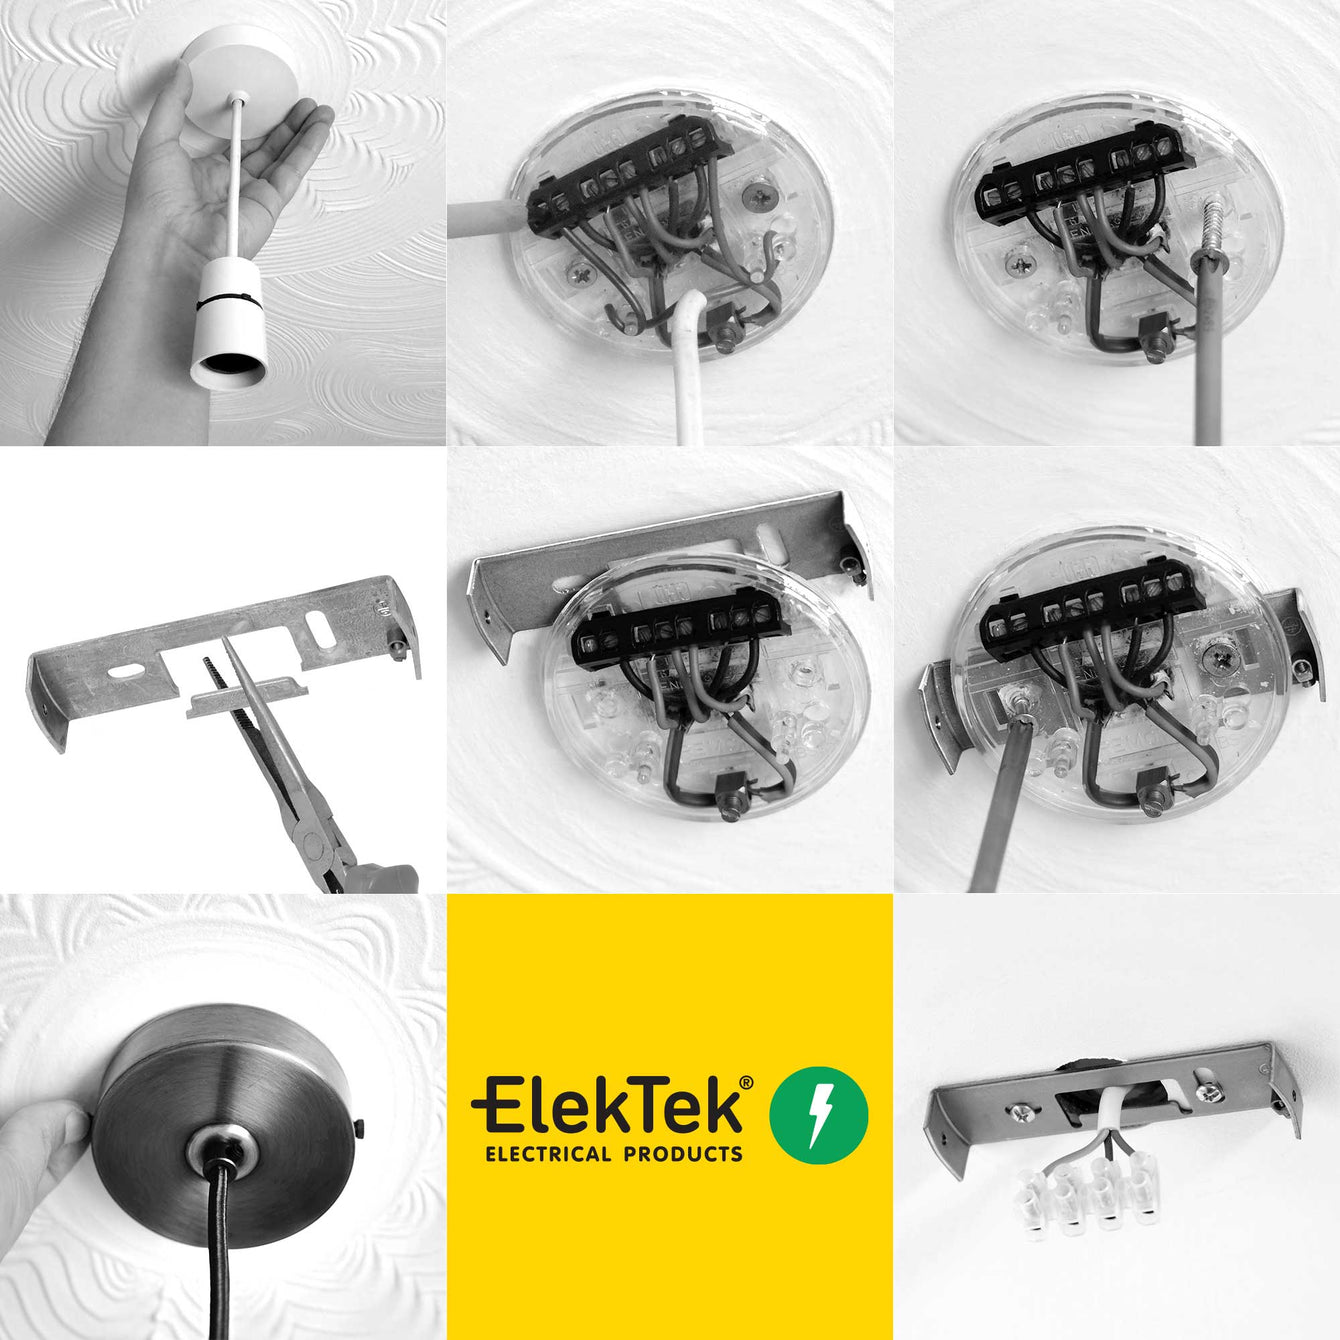 ElekTek 100mm Diameter Flat Top Ceiling Rose with Strap Bracket and Hook Metallic Finishes Powder Coated Colours Fusion Bronze